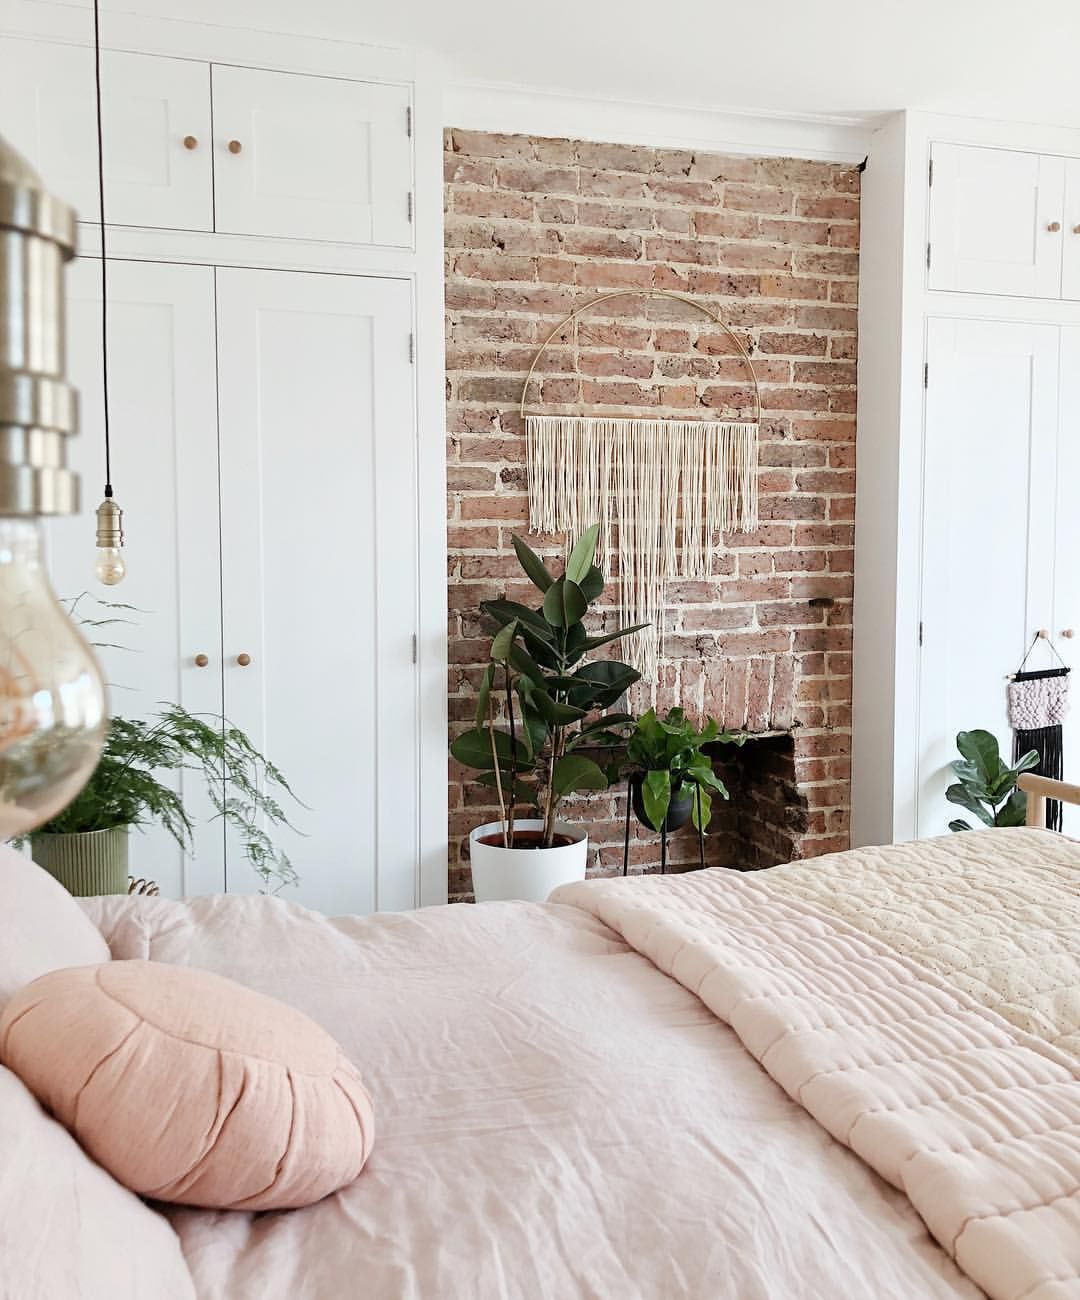 Exposed Brick Bedroom Design Sensual Bedroom Paint Colors Master Bedroom Accent Wall Bedroom Curtains Harry Corry: Kelly On Instagram: €�Still Weather Obsessed.... The